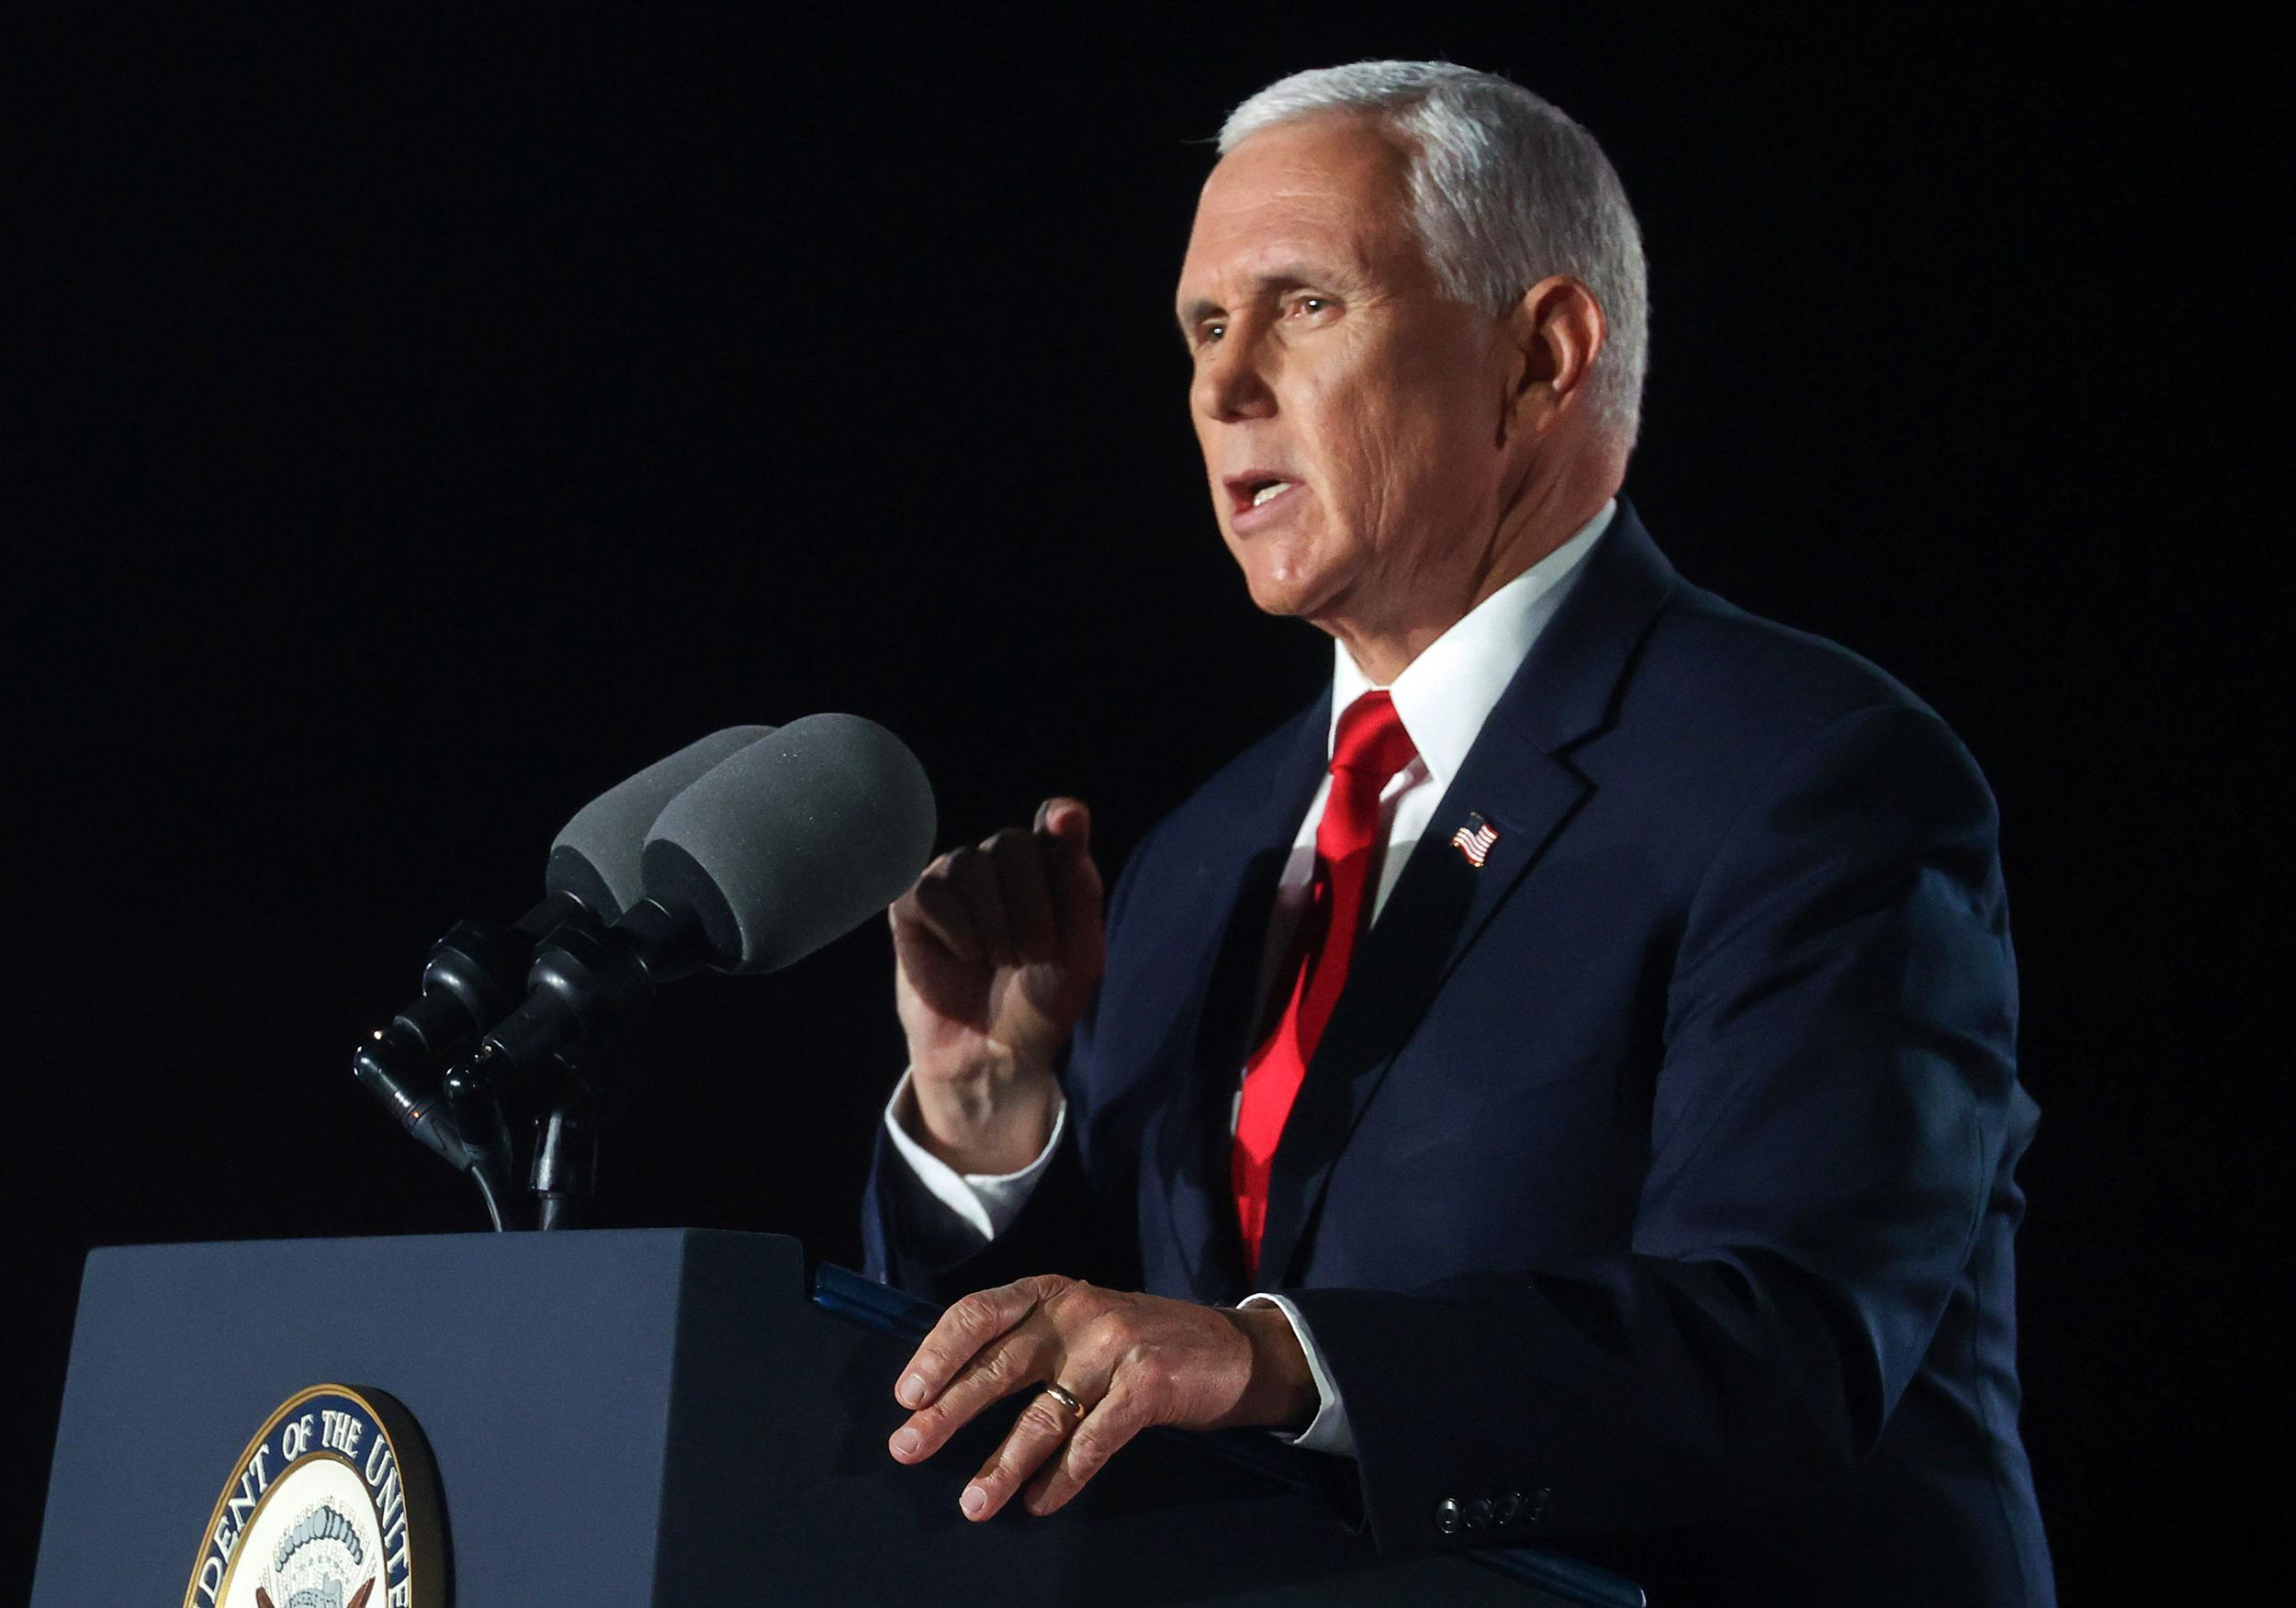 Pence drops plan to go to fundraiser hosted by QAnon backers